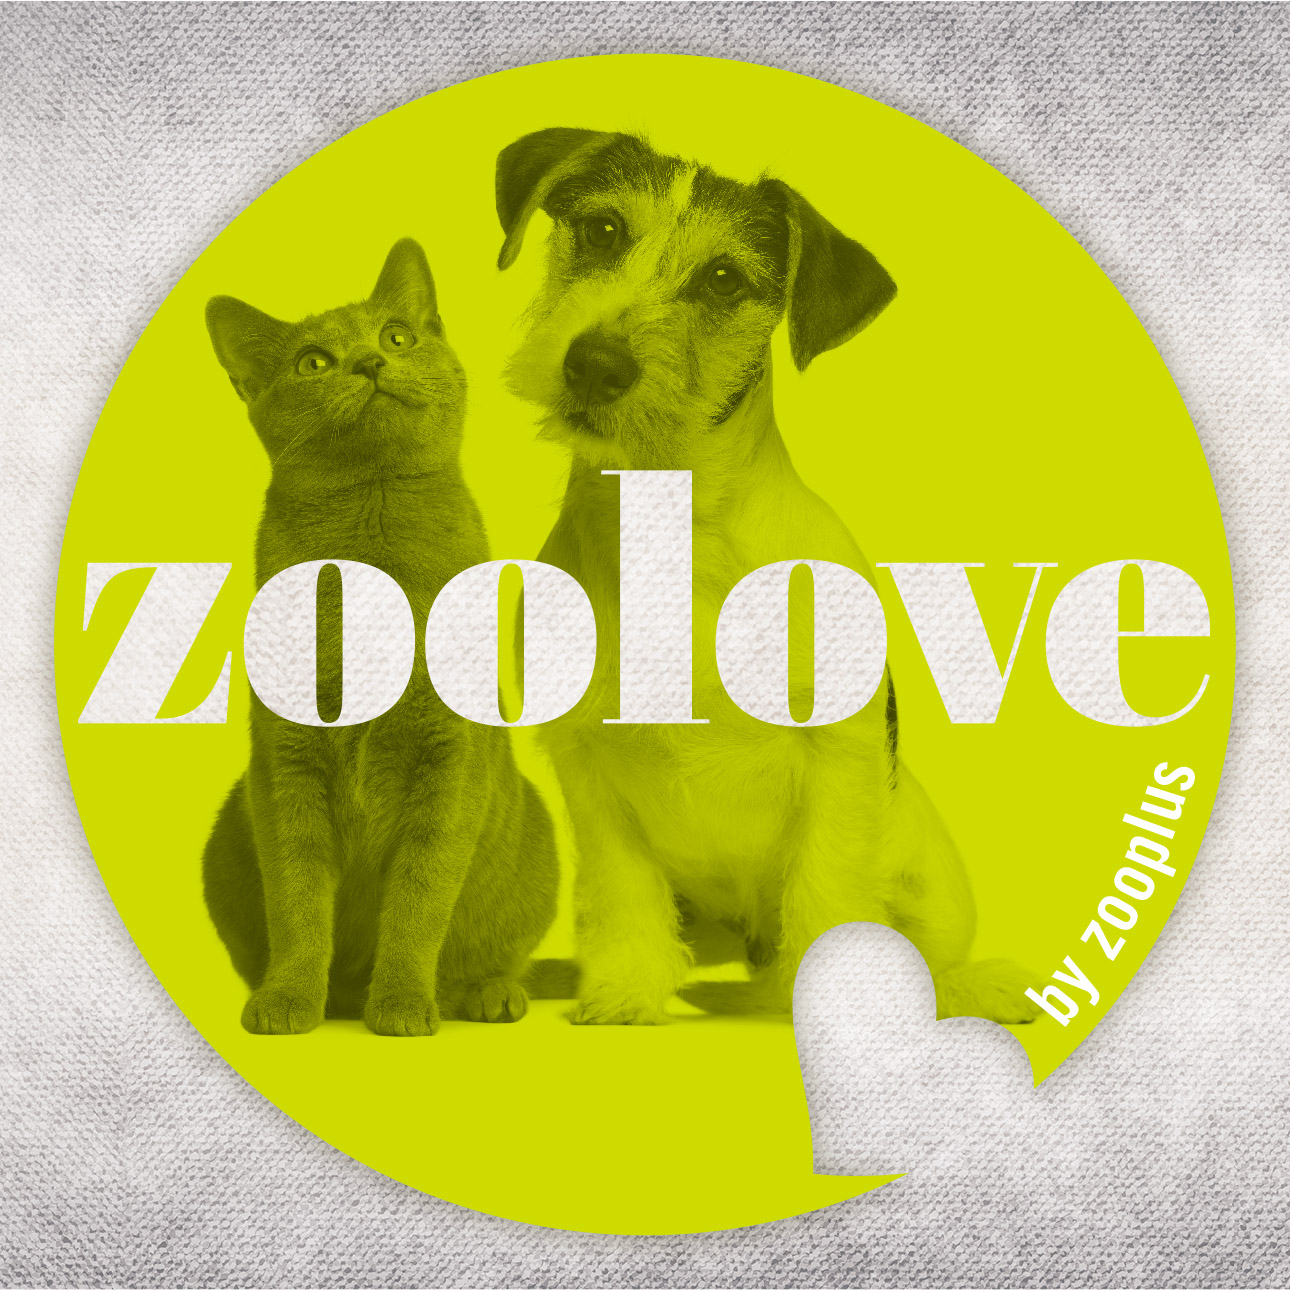 image zoolove by zooplus